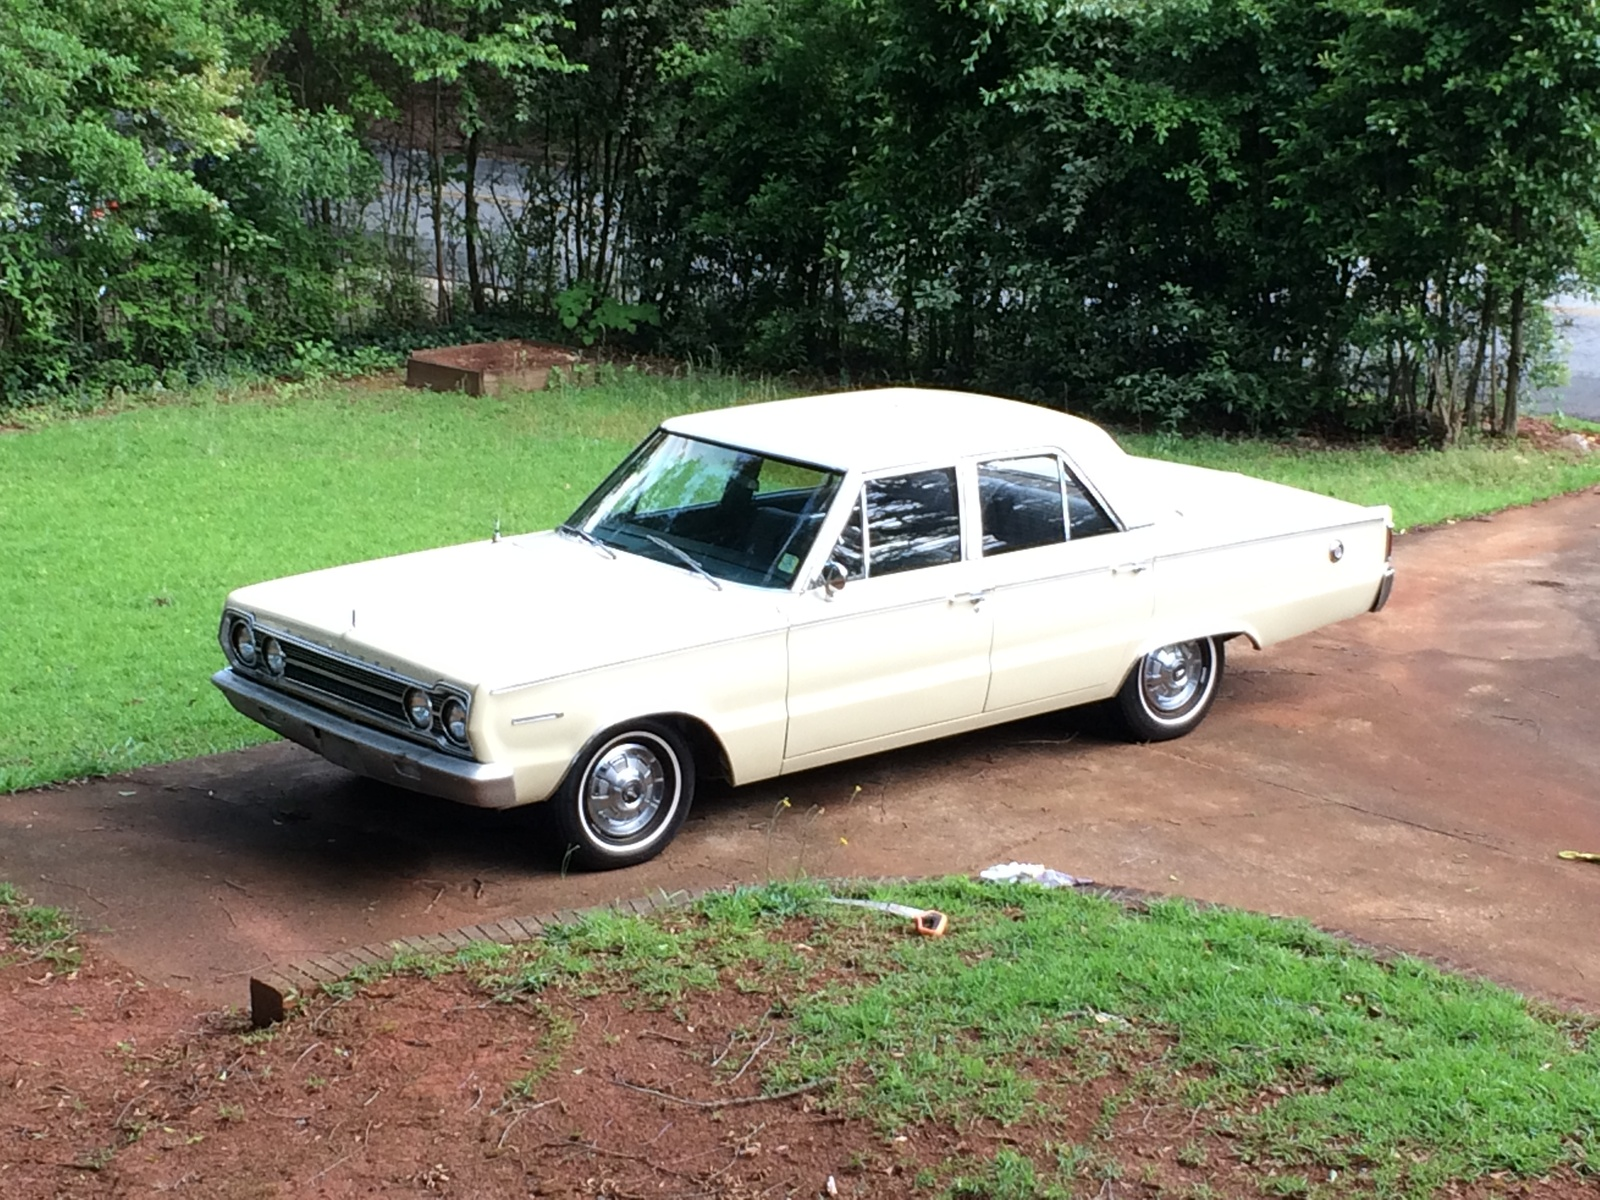 1967 Plymouth Belvedere - Overview - CarGurus